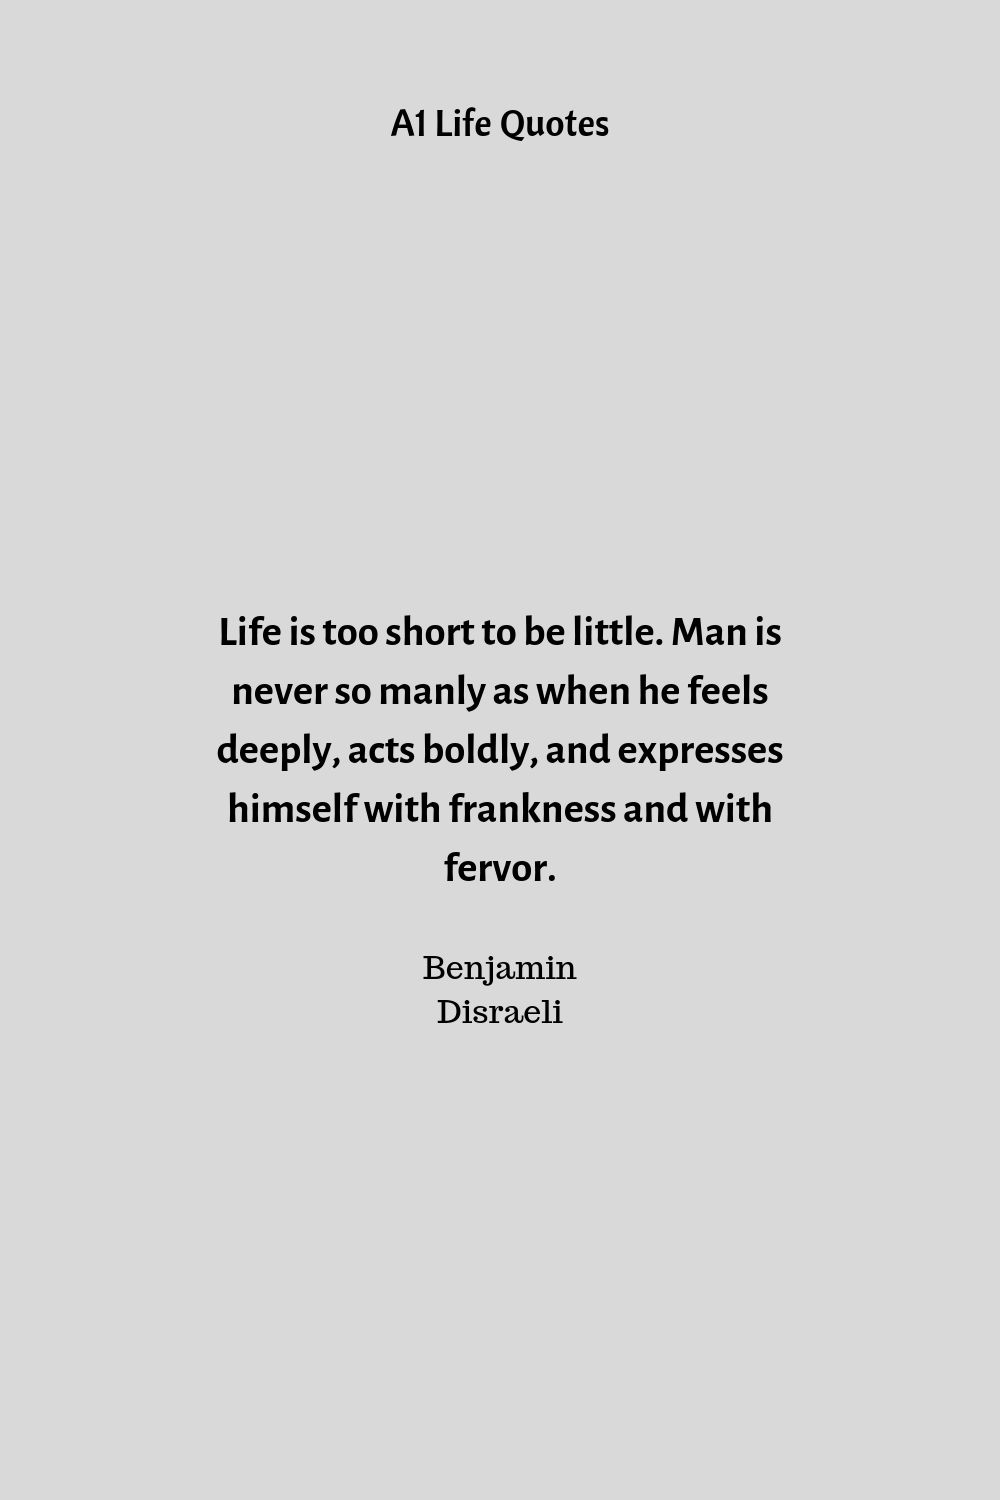 life is too short quote dr seuss